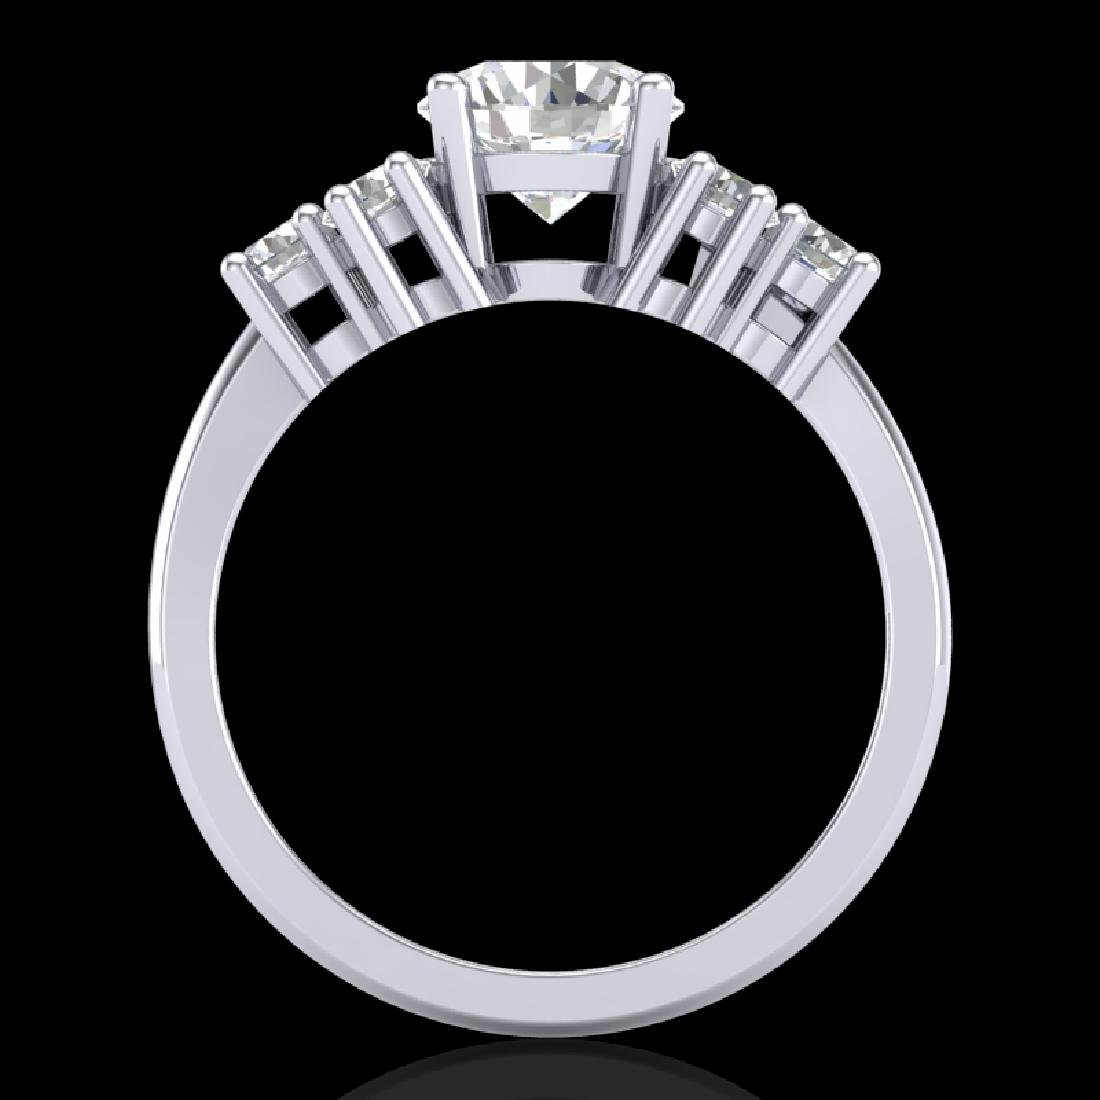 2.1 CTW VS/SI Diamond Solitaire Ring 18K White Gold